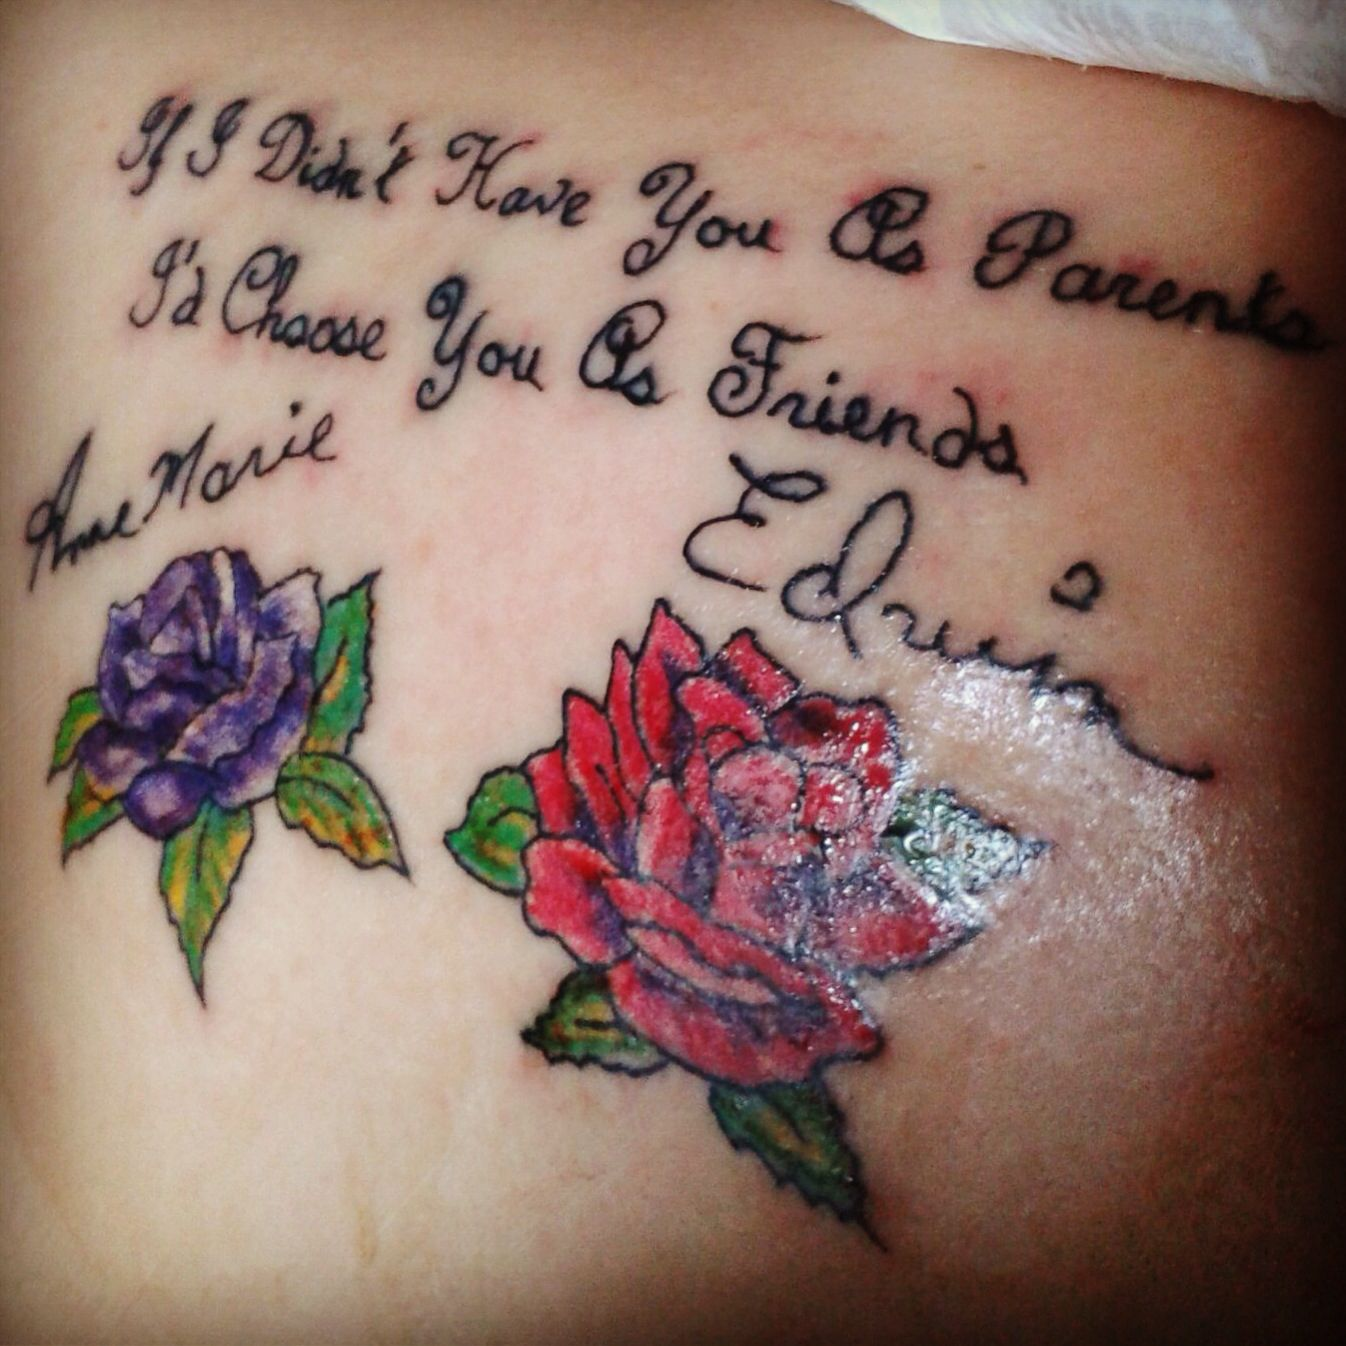 Tattoo Quotes With Roses: Tattoo Parents Quote Signatures Roses Red Purple Love